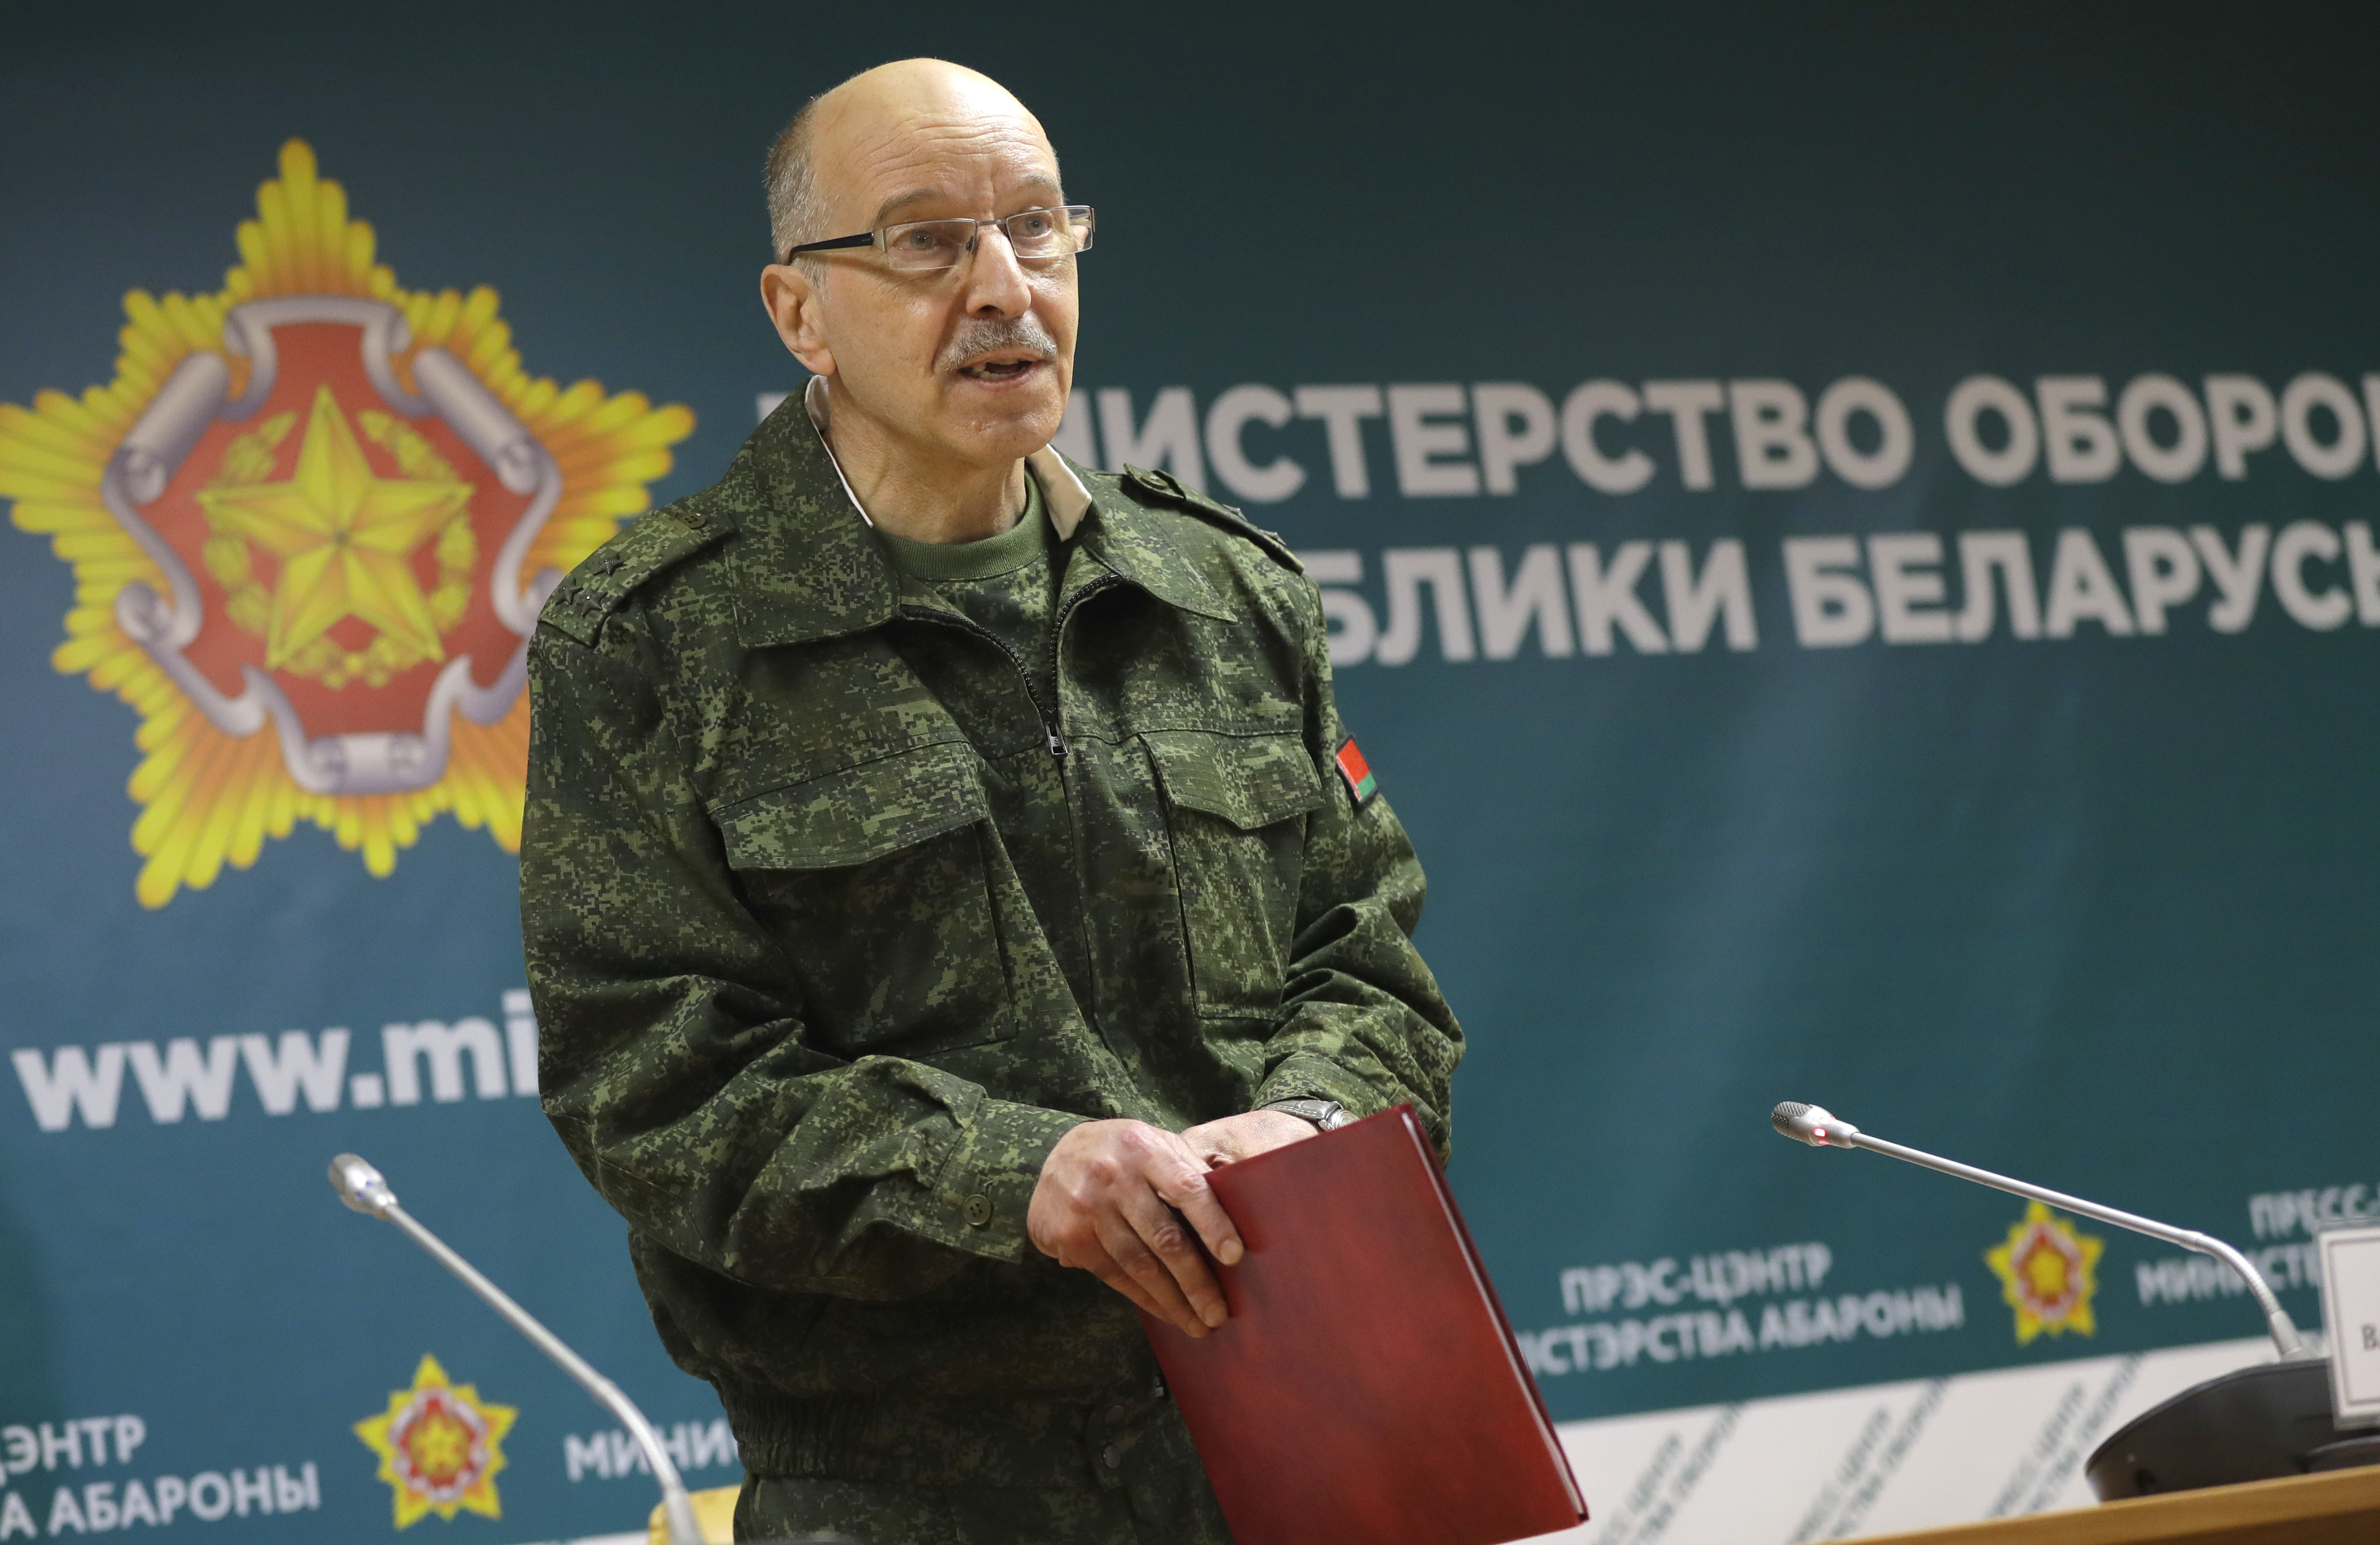 The official representative of the Belarusian Ministry of Defence, Col. Vladimir Makarov, addresses the media during a briefing in Minsk, Belarus, on Sept. 14, 2017. Zapad involves thousands of troops, tanks and aircraft. (Sergei Grits/AP)